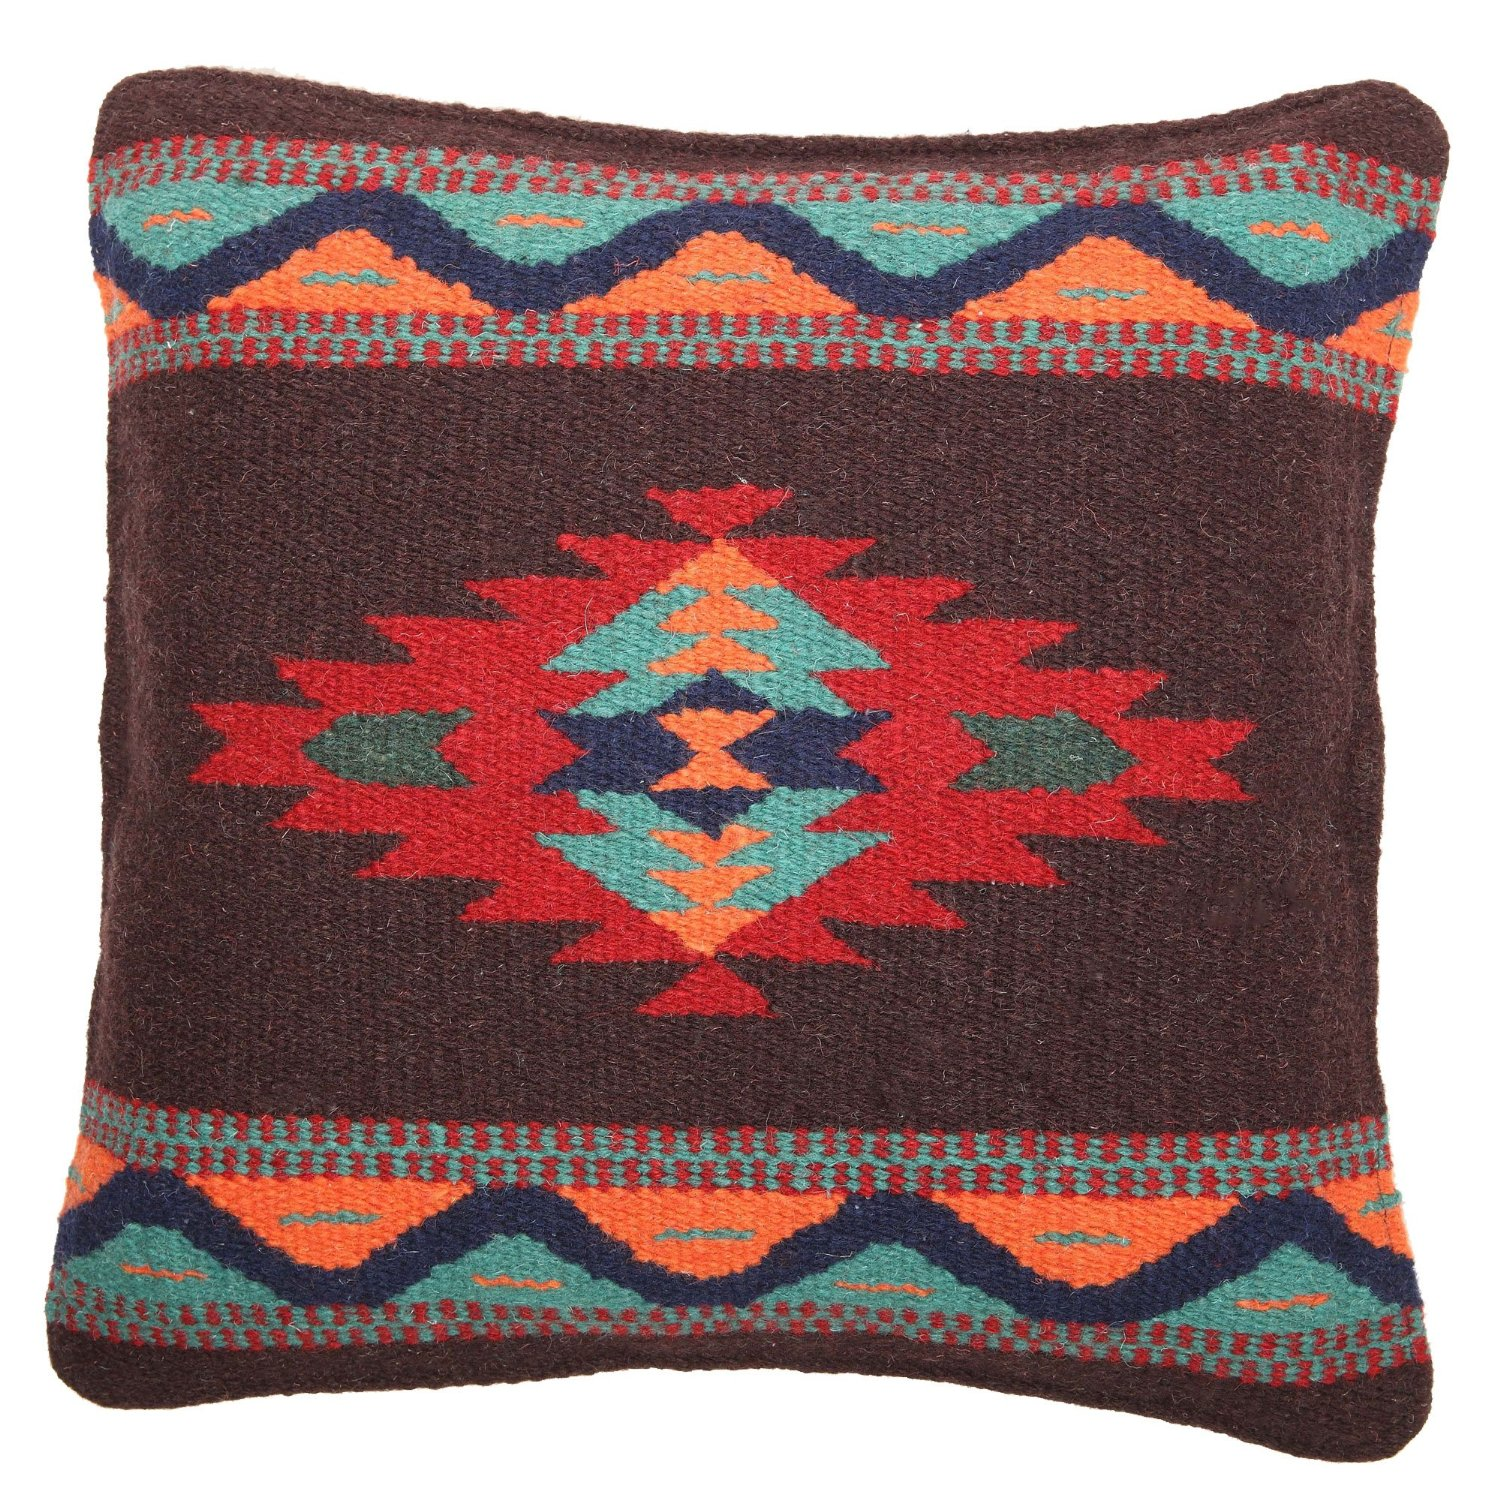 Southwestern Wool Pillow Covers : Wool Throw Pillow Cover Southwest Native American 18X18 Decorative Running Bear eBay